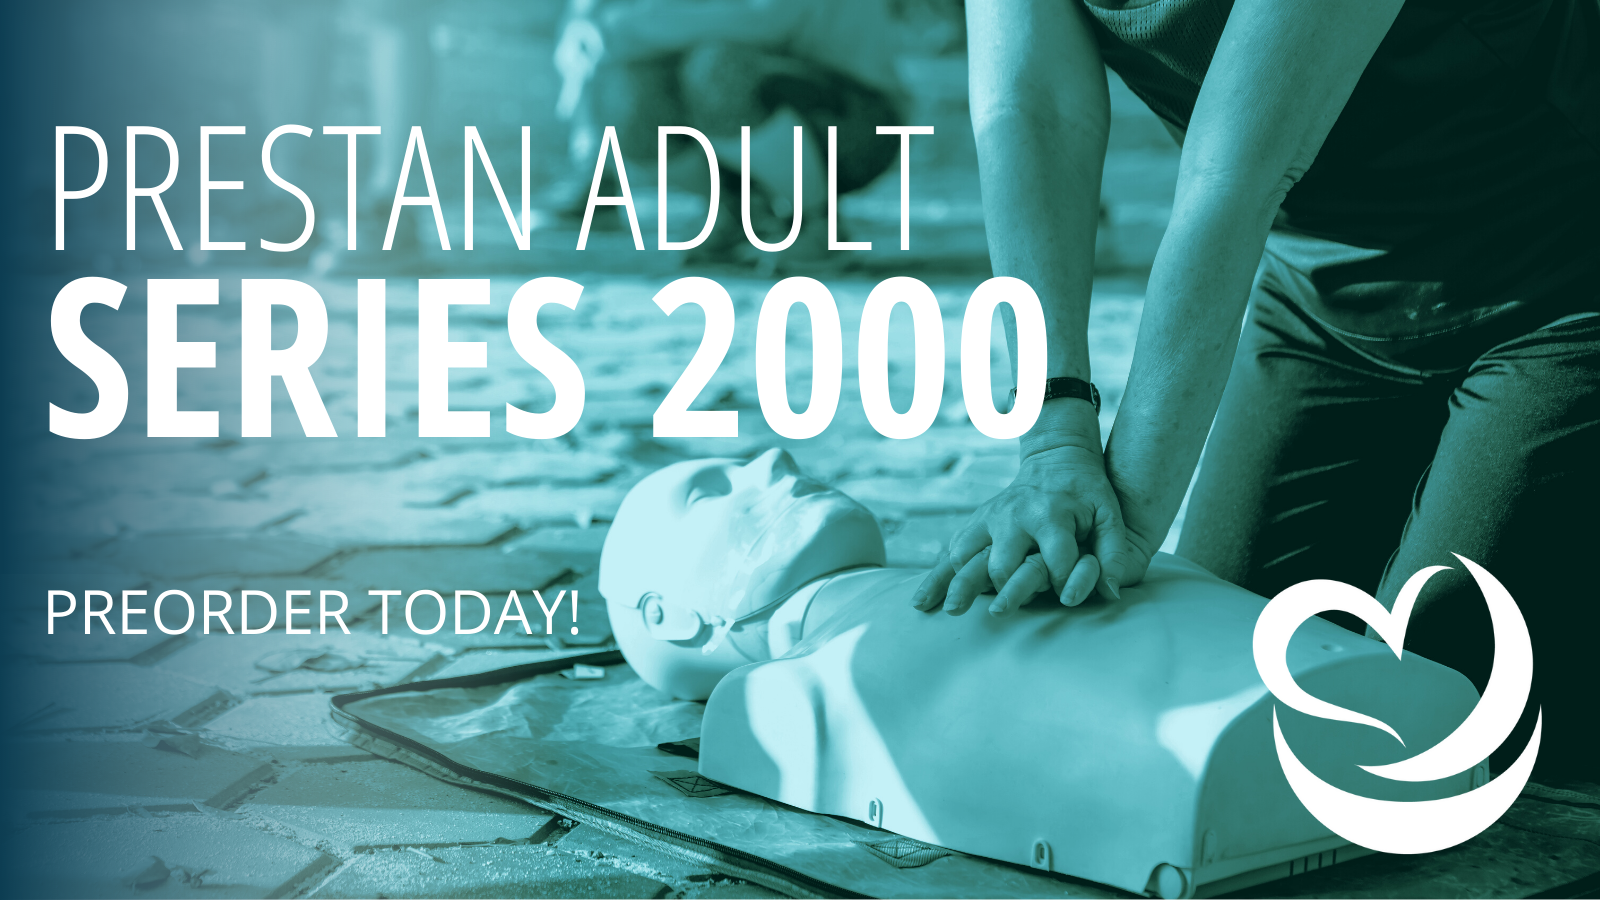 Introducing the PRESTAN® Adult Series 2000 Manikin   Now Available at WorldPoint!